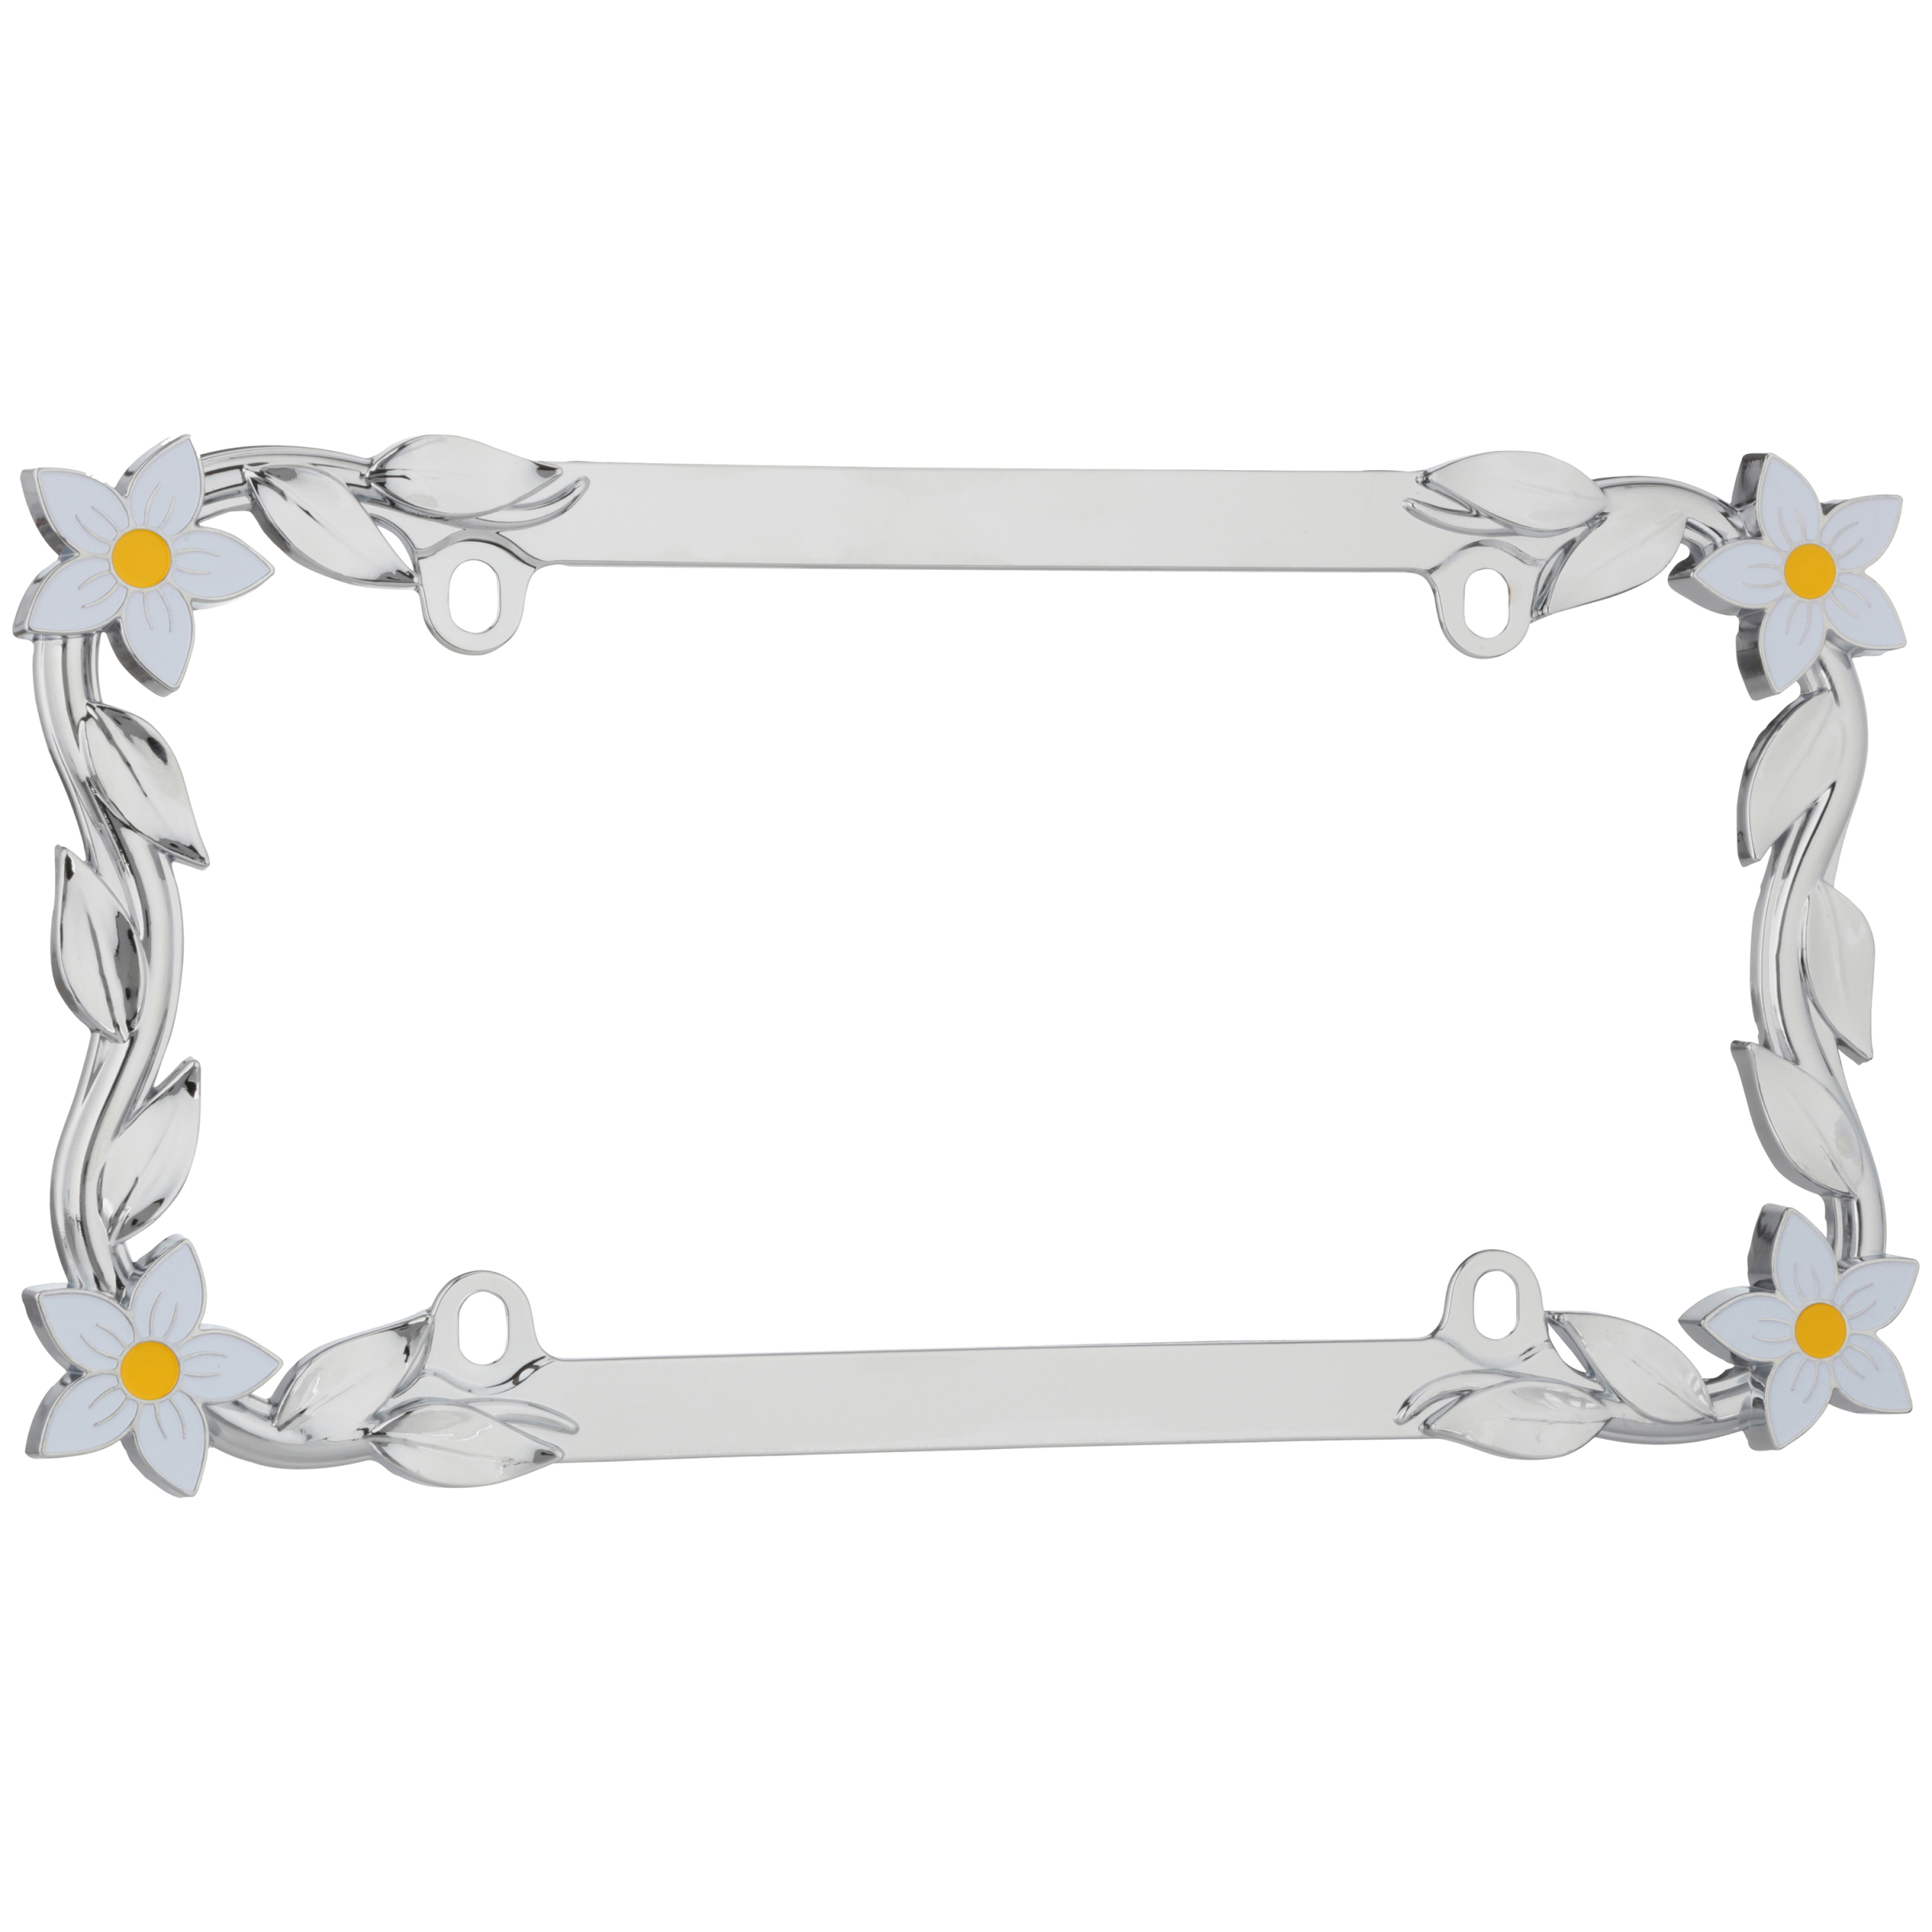 w//Fastener caps Cruiser Accessories Chrome 1 23053 Butterfly License Plate Frame